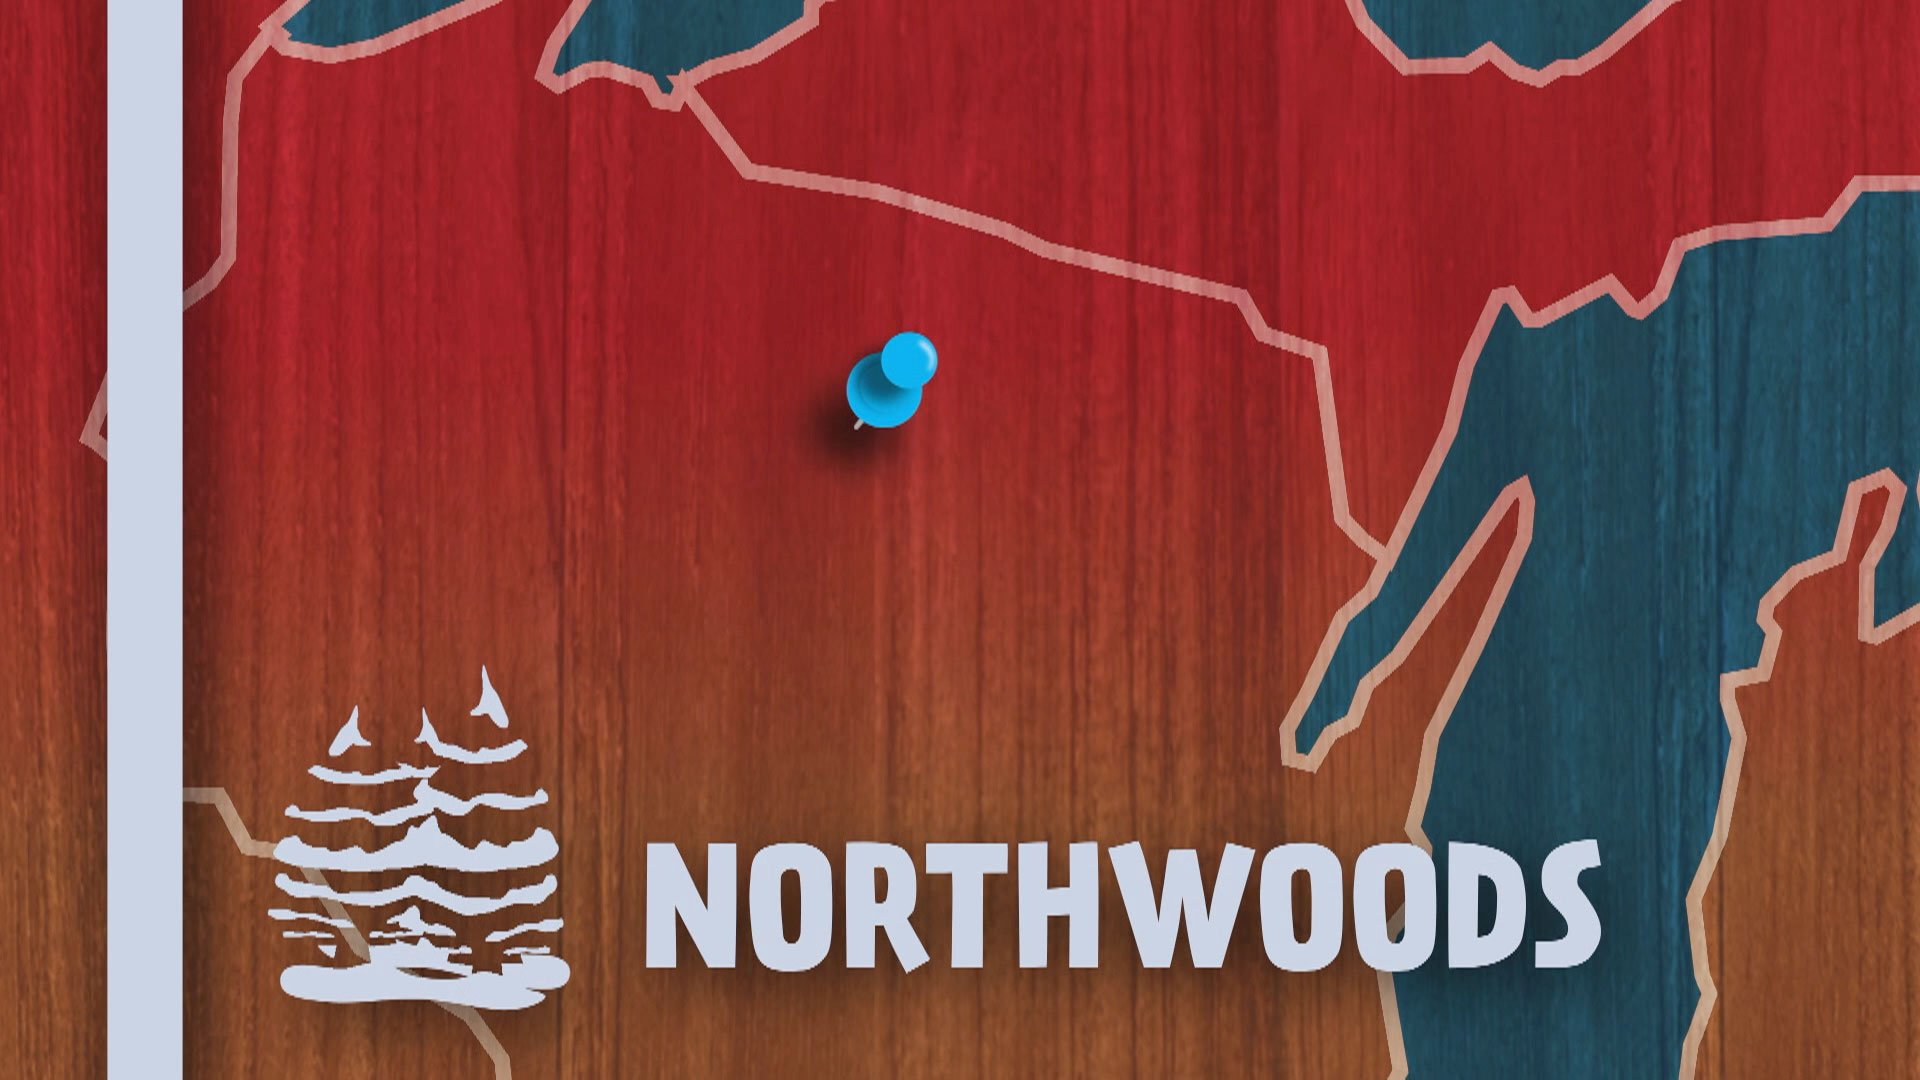 Northwoods, Wisconsin